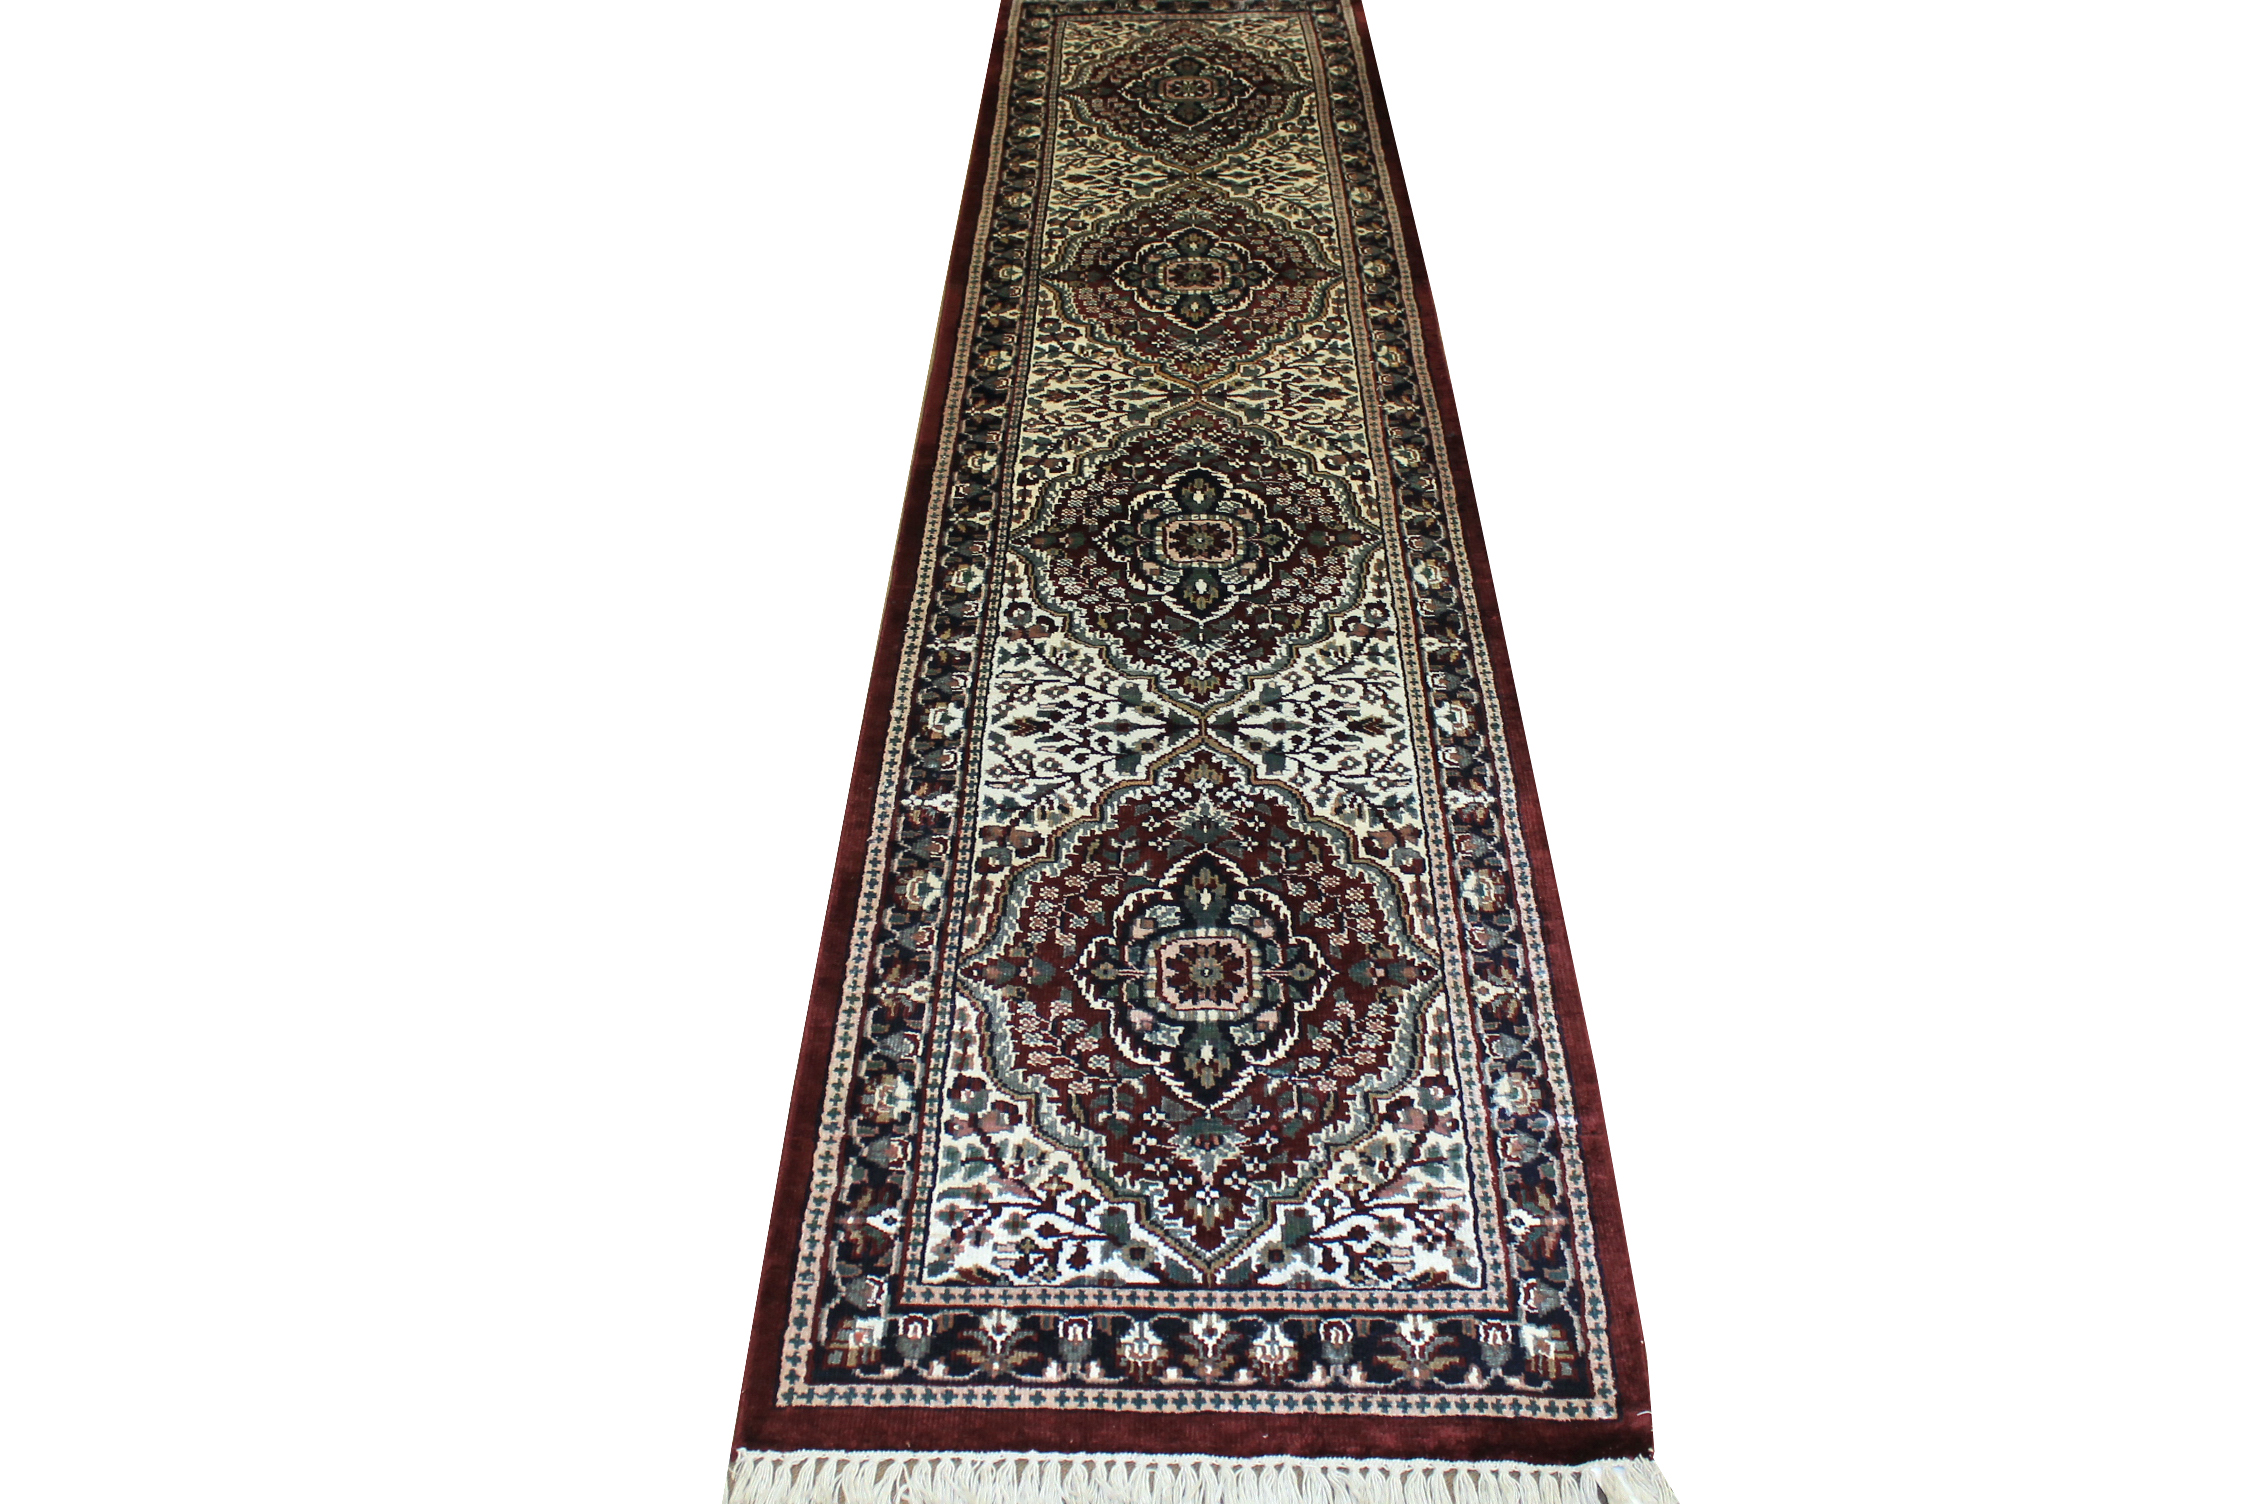 10 ft. Runner Traditional Hand Knotted Wool Area Rug - MR1099